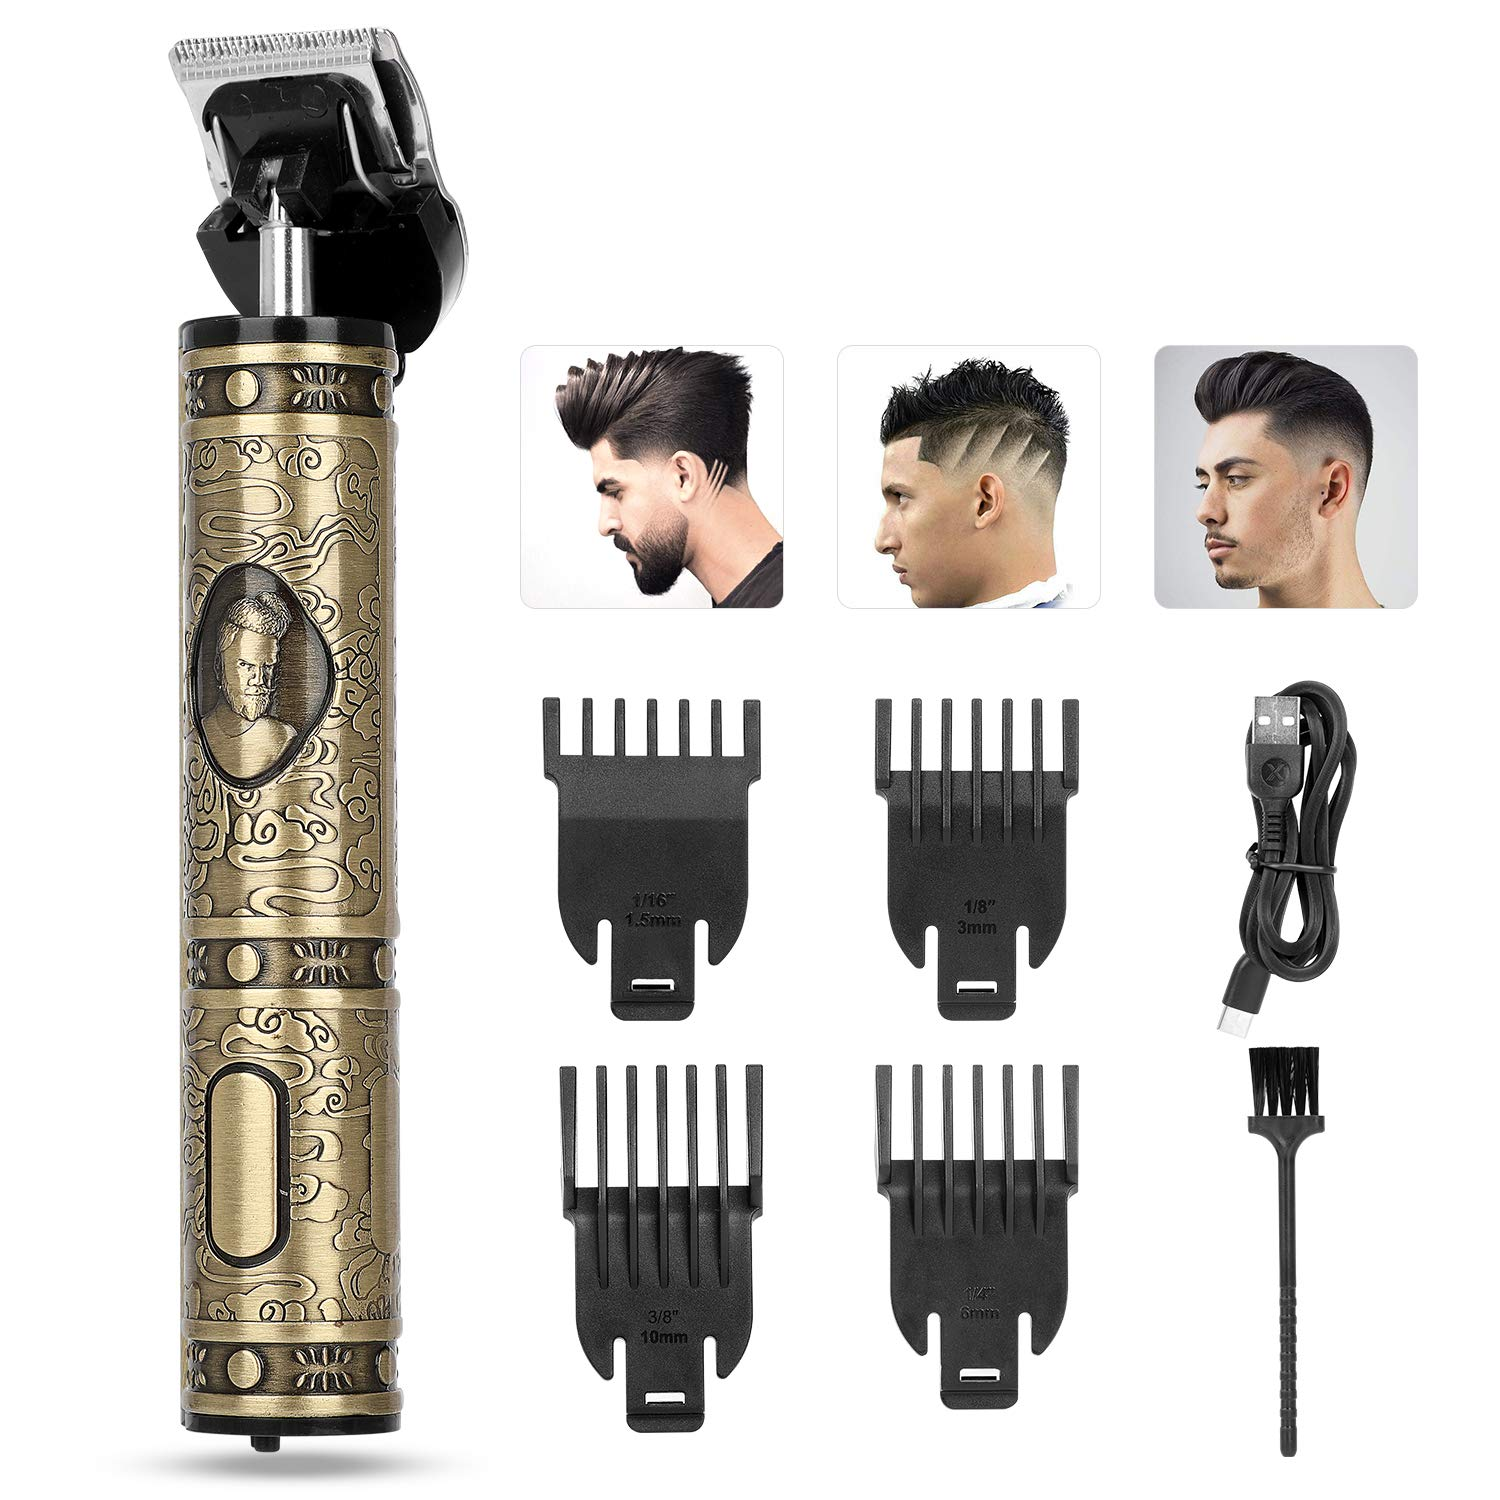 Electric Hair Clippers For Men, Hair Trimmer For Men, Clippers For Hair Cutting Kit, YESMET Cordless Zero Gapped Trimmer Hair Clipper With T Blade Trimmer 4 Guide Combs For Barber Bald Head (a bronze)